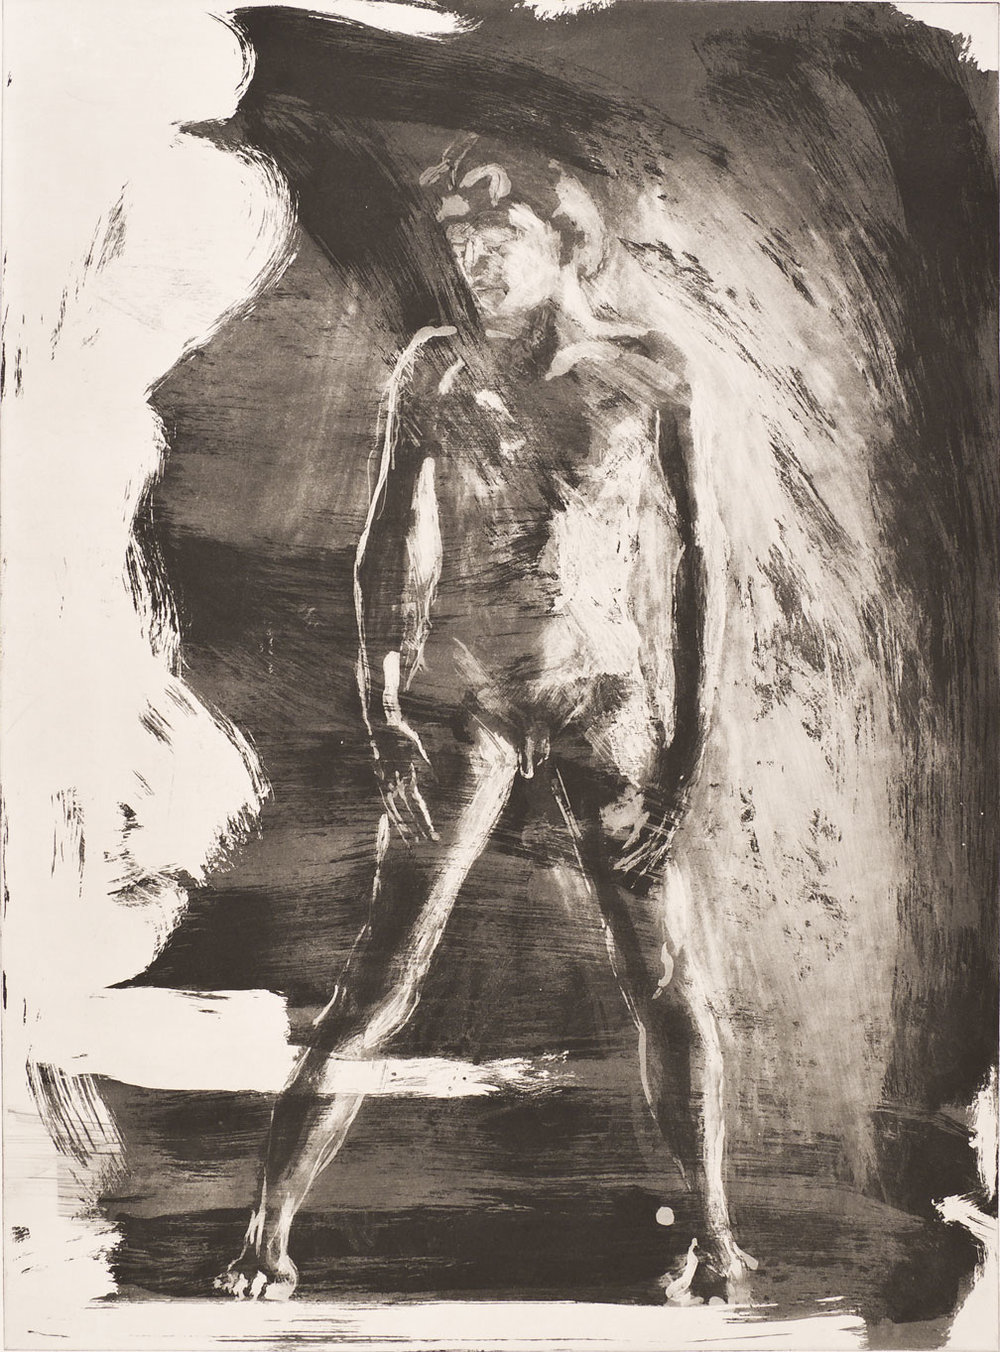 Floating Islands George Platt Lynes Figure, 1985. Etching on paper, study proof J, 30 x 21 inches